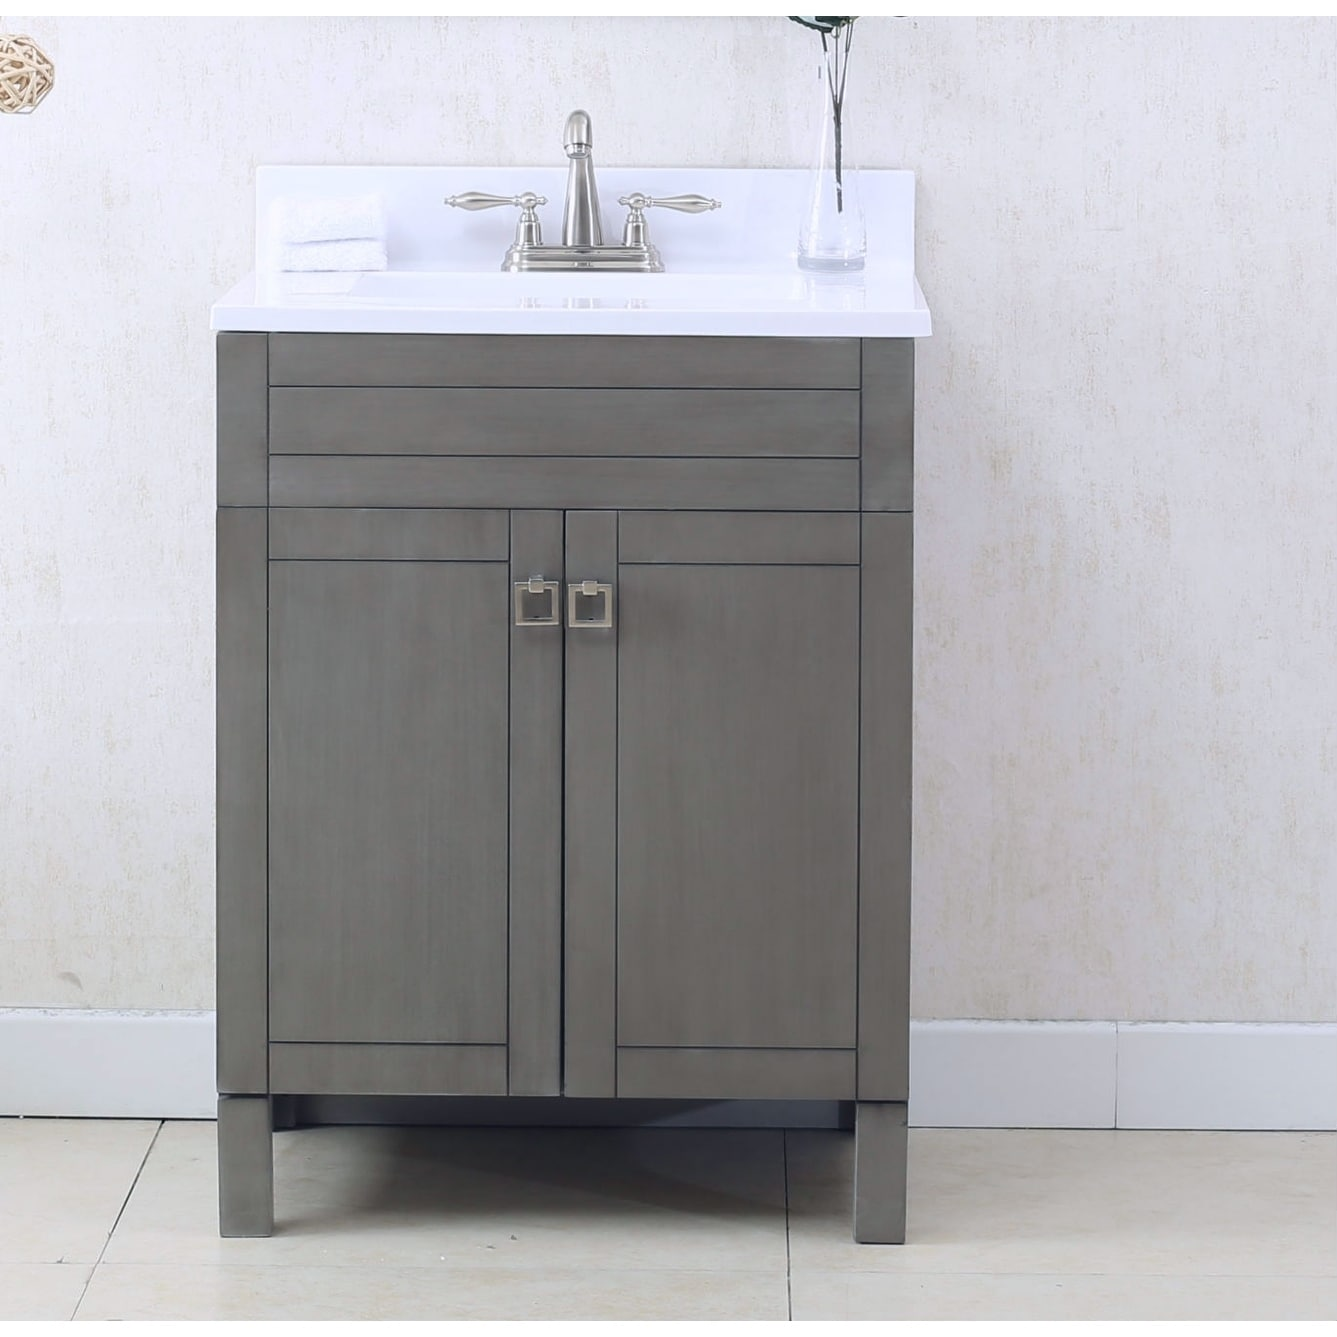 Shop Legion Furniture 25 in. Bathroom Vanity in Silver Gray with Porcelain Top - Free Shipping Today - Overstock.com - 20559681